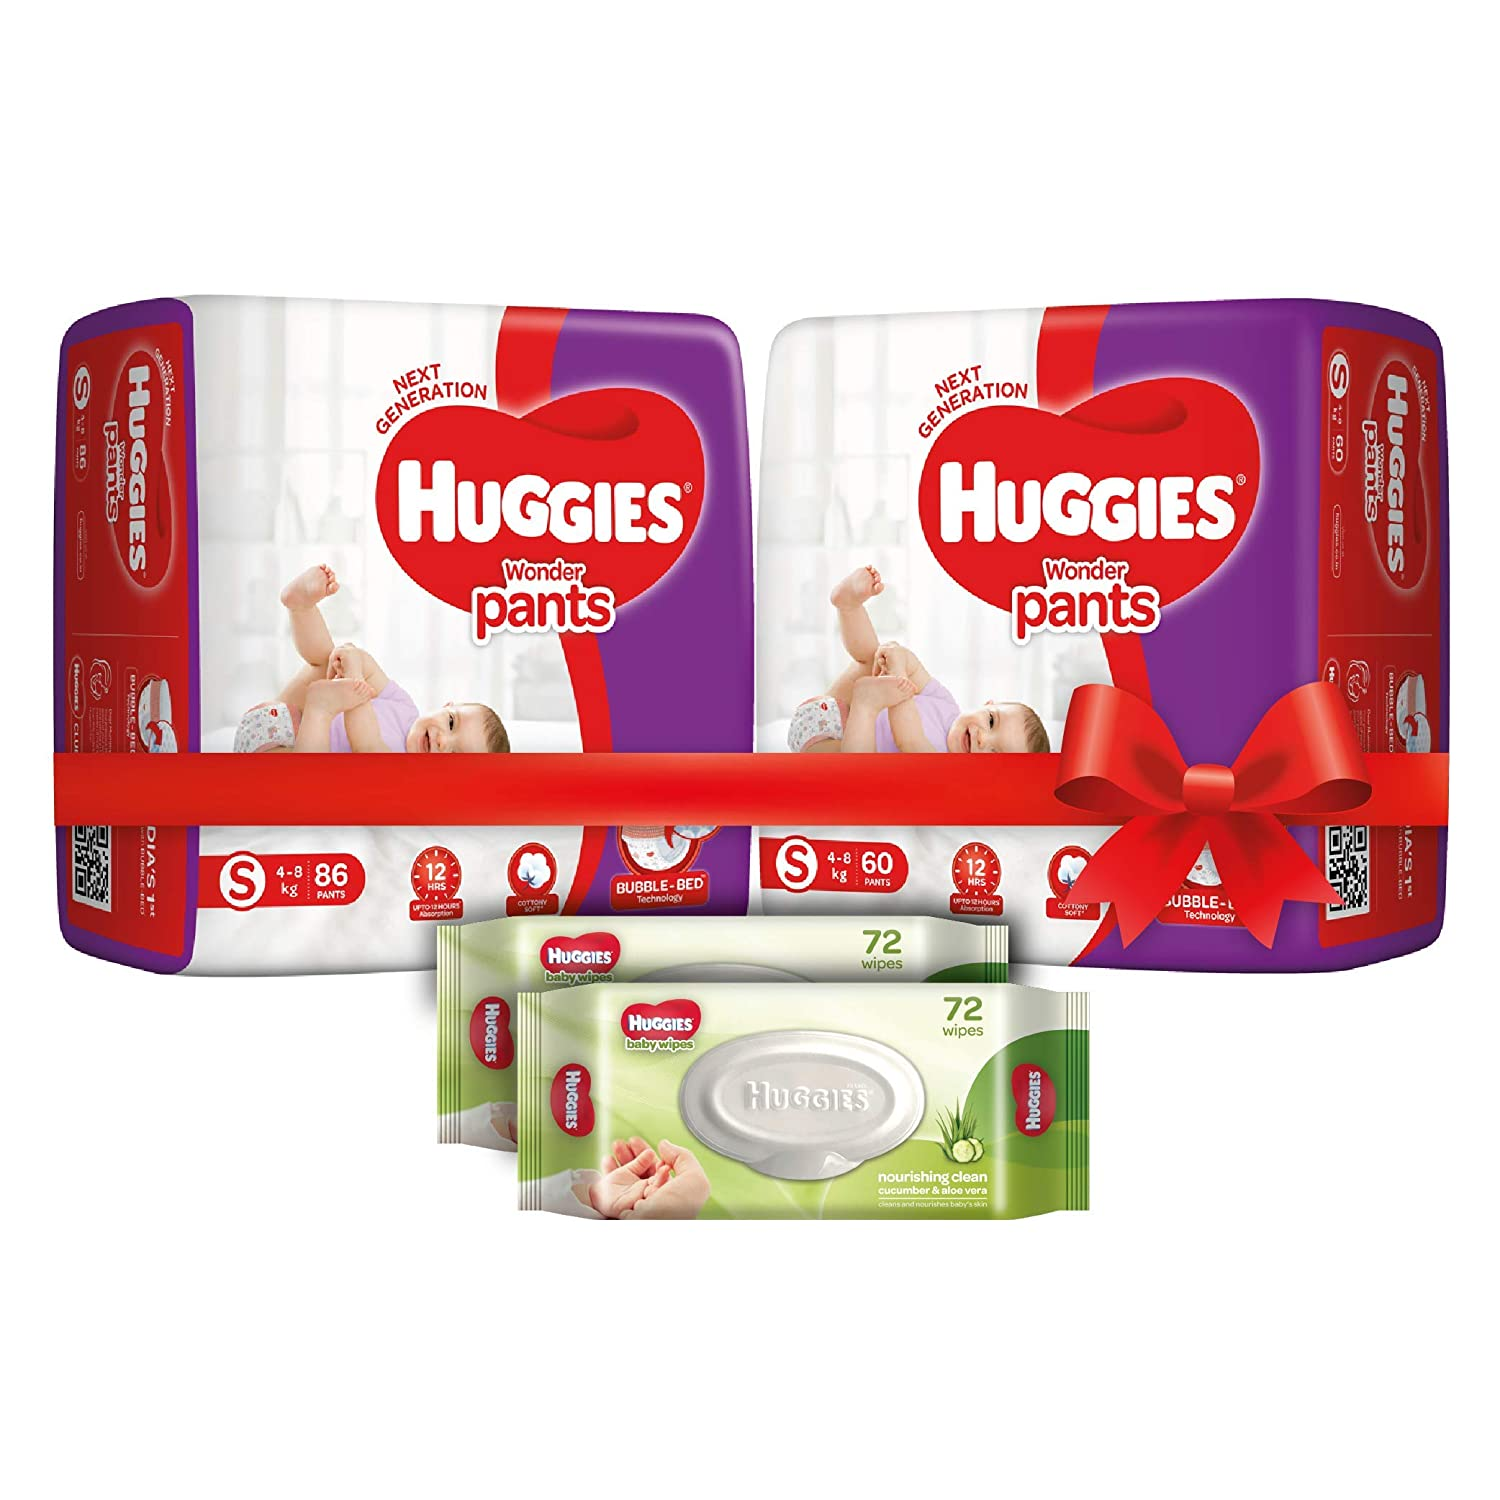 Huggies Wonder Pants Comfort Pack Small Size Diapers (146 Count) and Huggies Baby Wipes - Cucumber & Aloe Pack of 2 (144 Wipes)